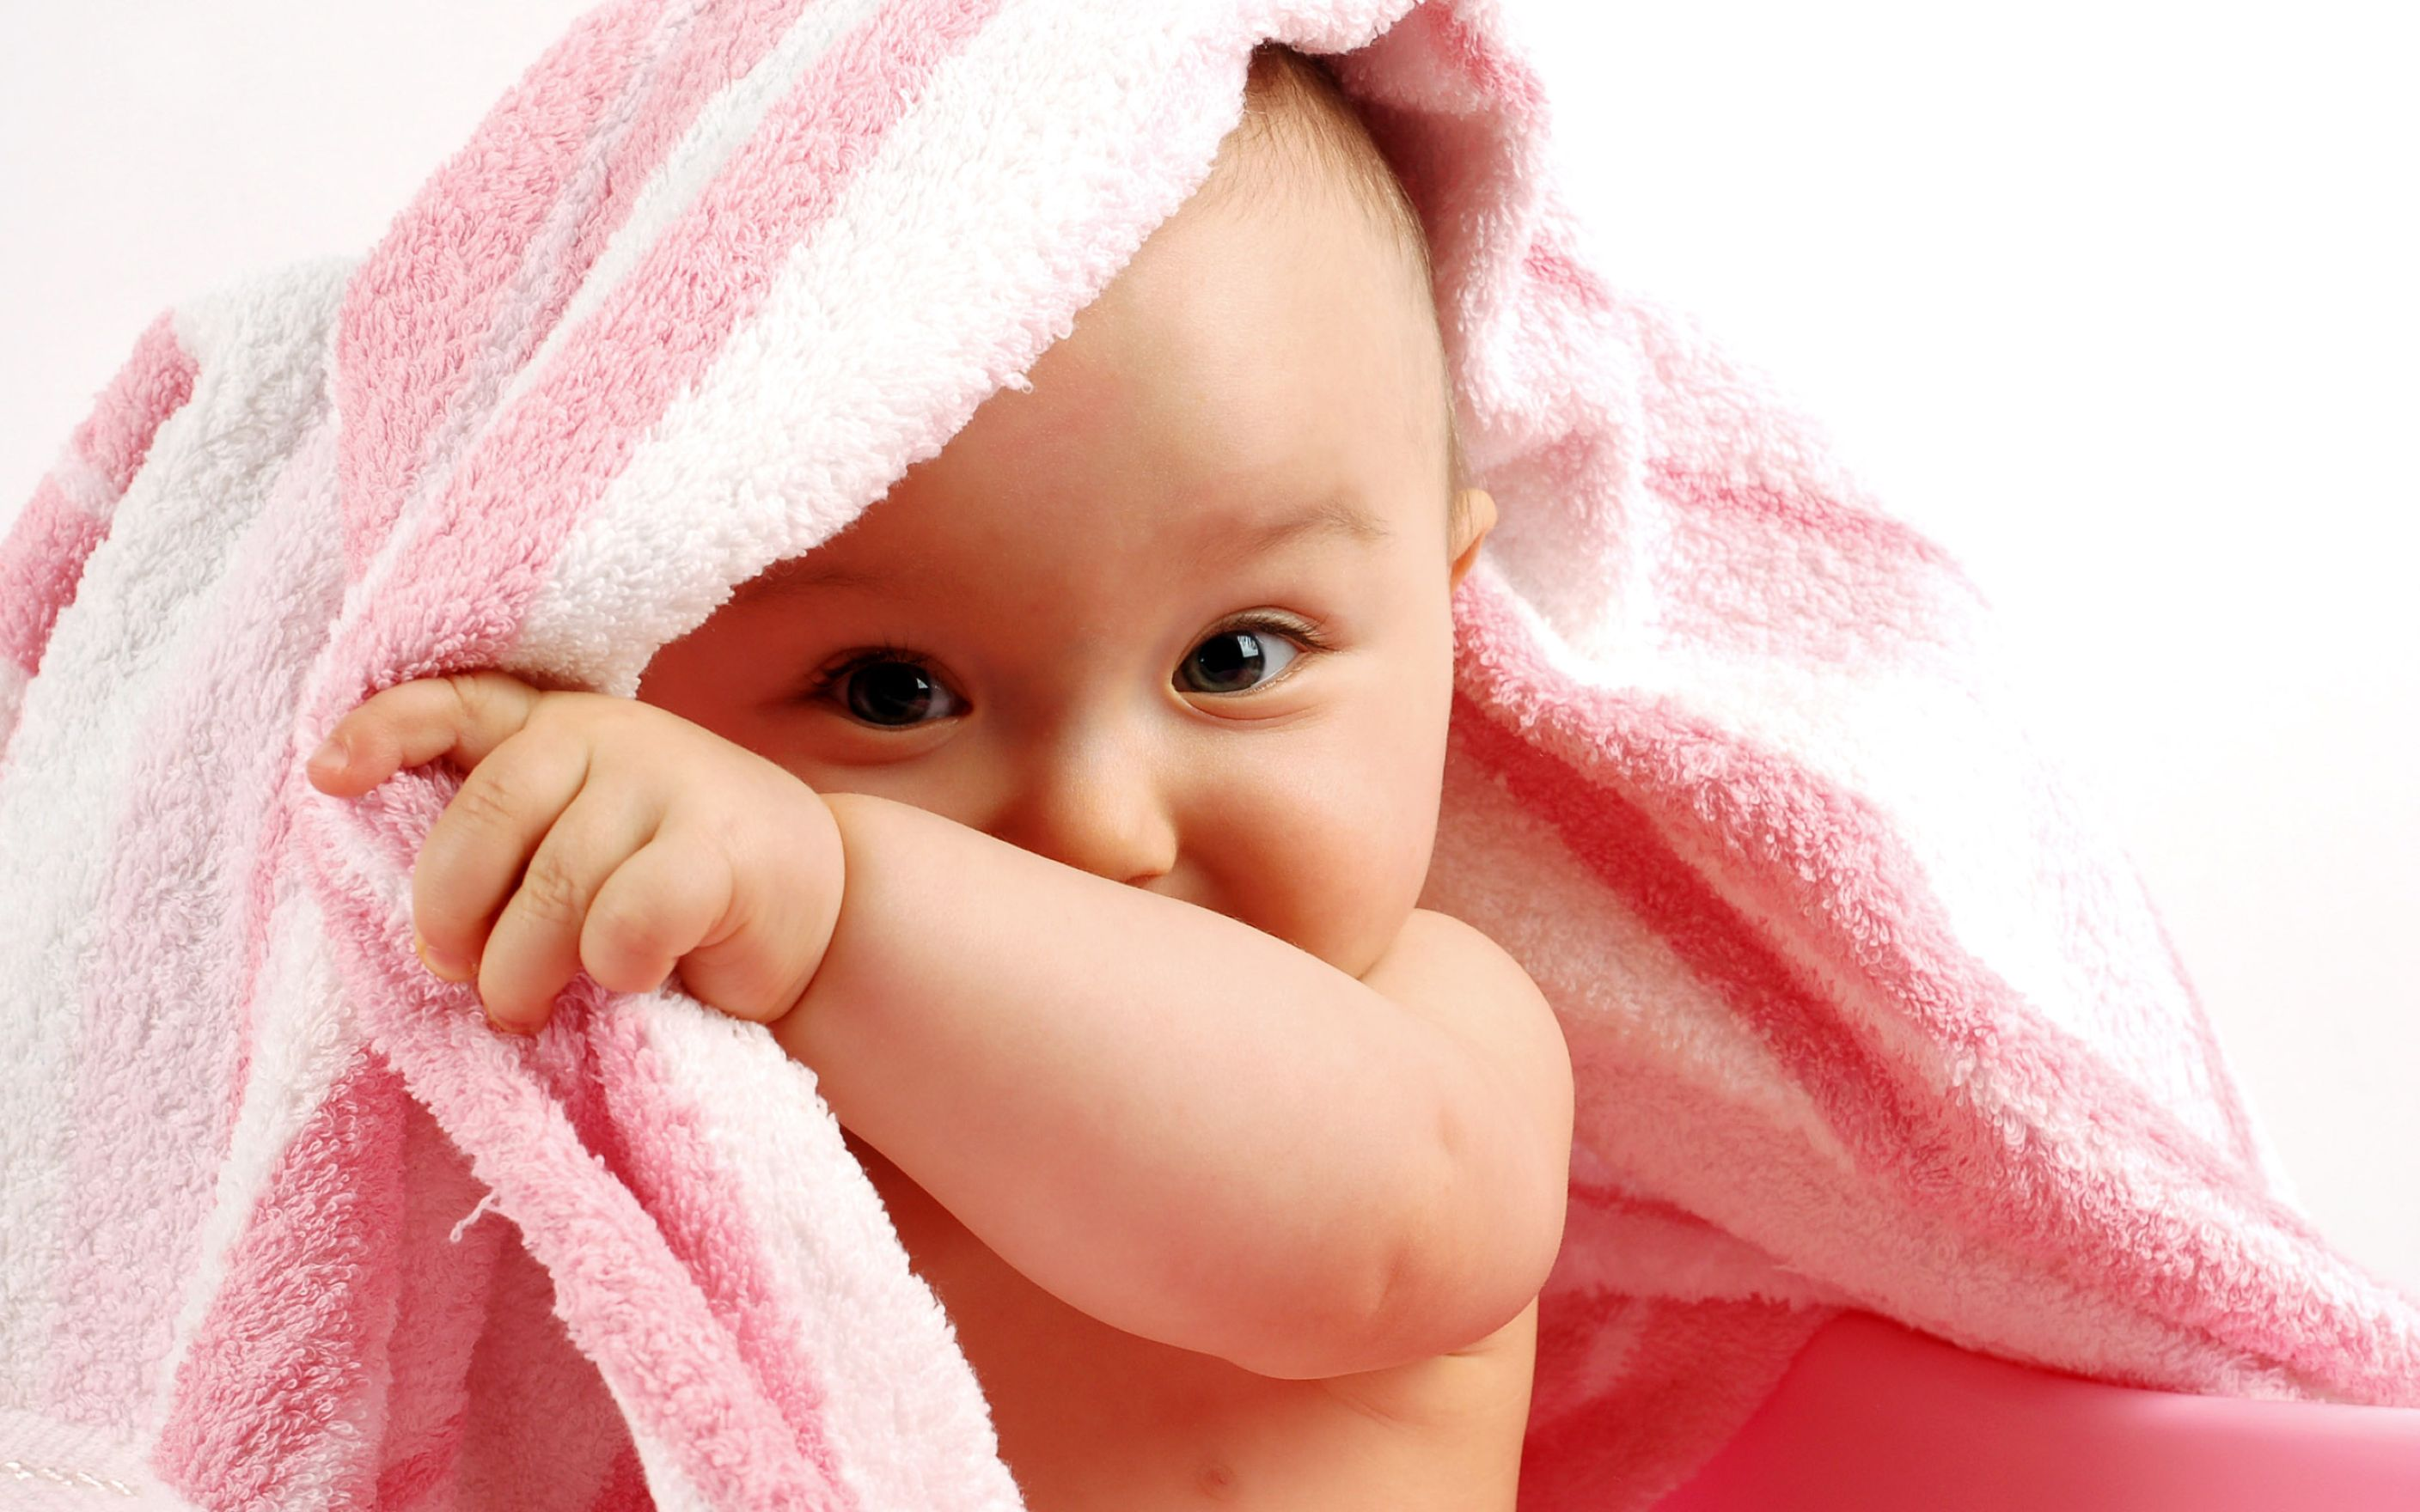 Cute baby boy 2 wide wallpaper desktop hd wallpaper download free cute baby boy 2 wide wallpaper voltagebd Image collections